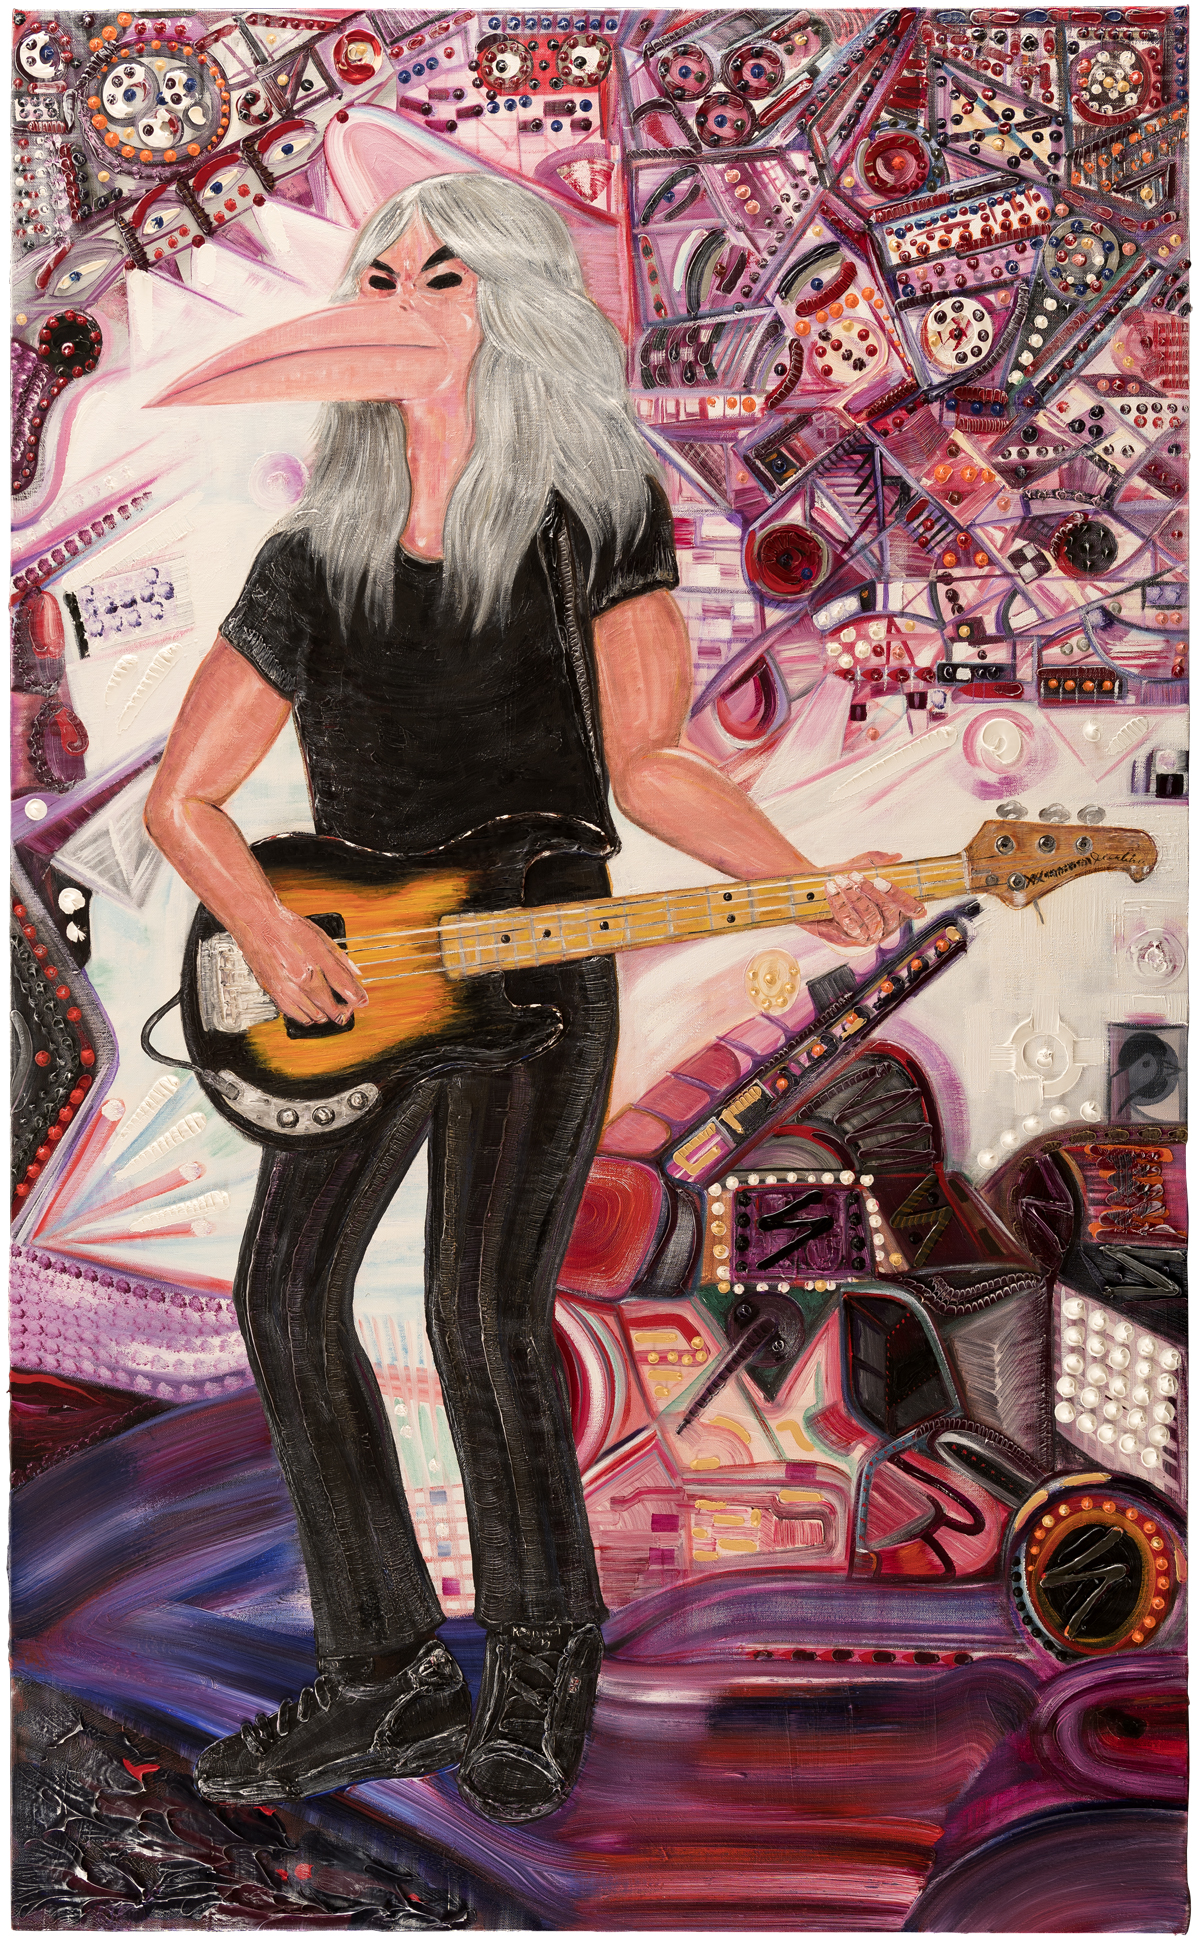 Abdul Vas. AC/DC. Cliff Williams The Best Bass Guitar Player of All Time AC/DC, 2007